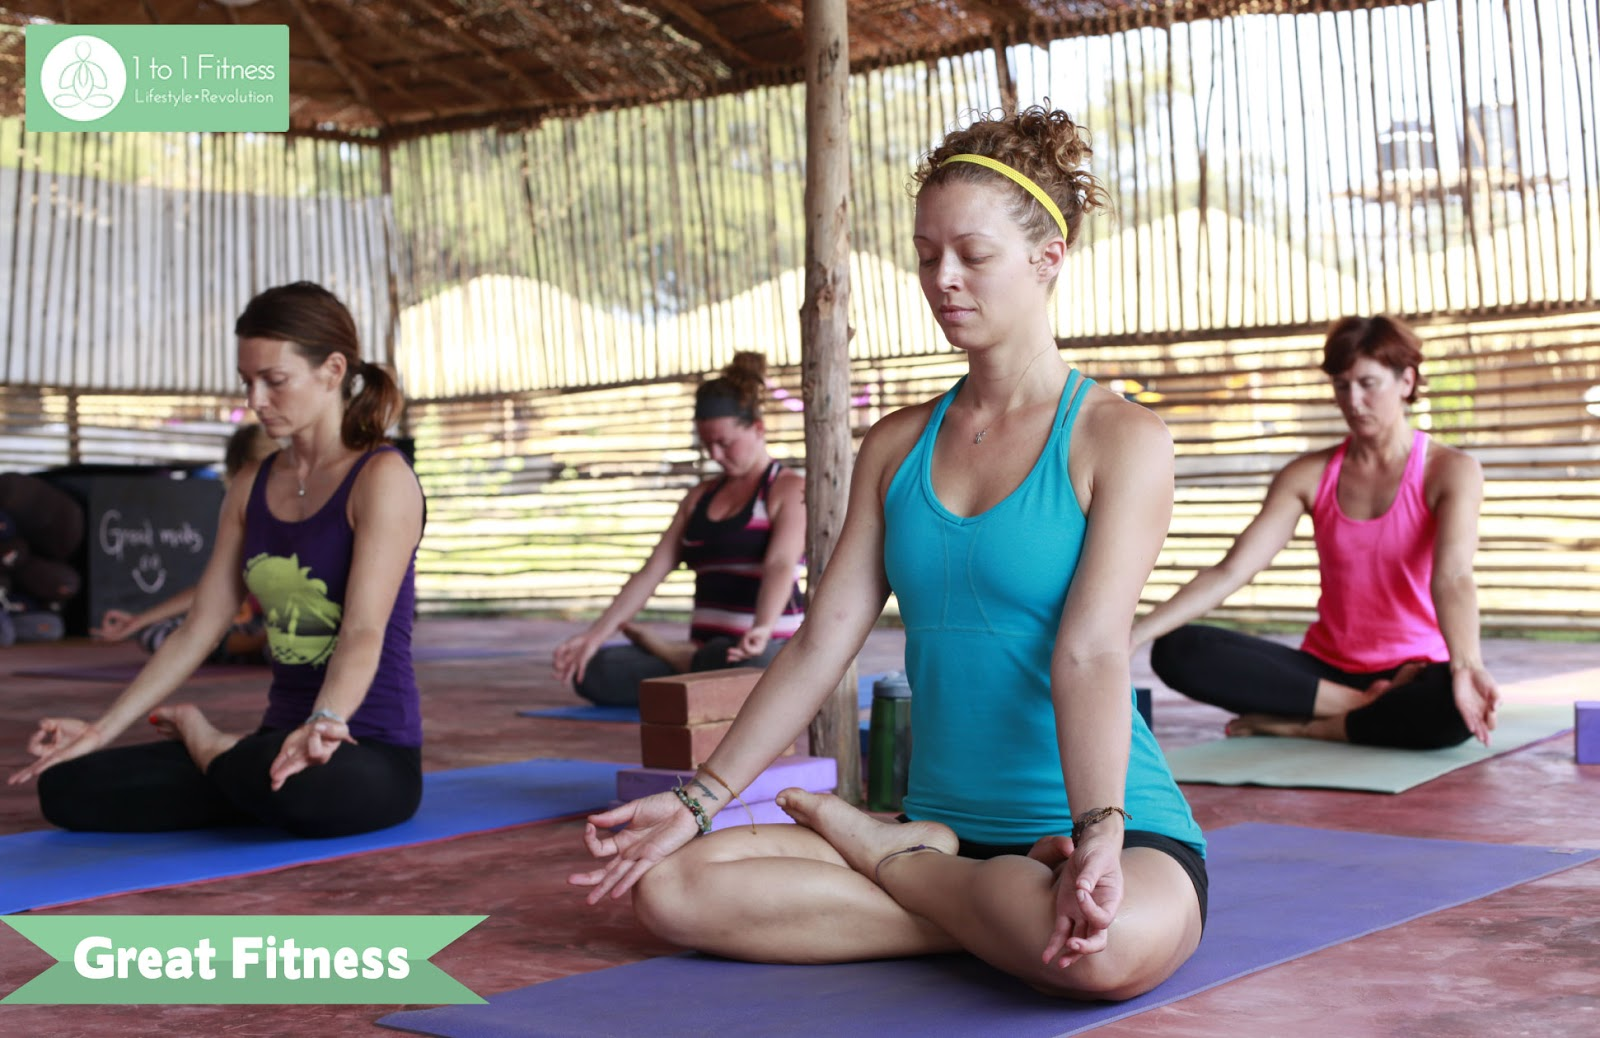 1 To 1 Fitness Free Online Yoga Training For Your Feel Great Fitness